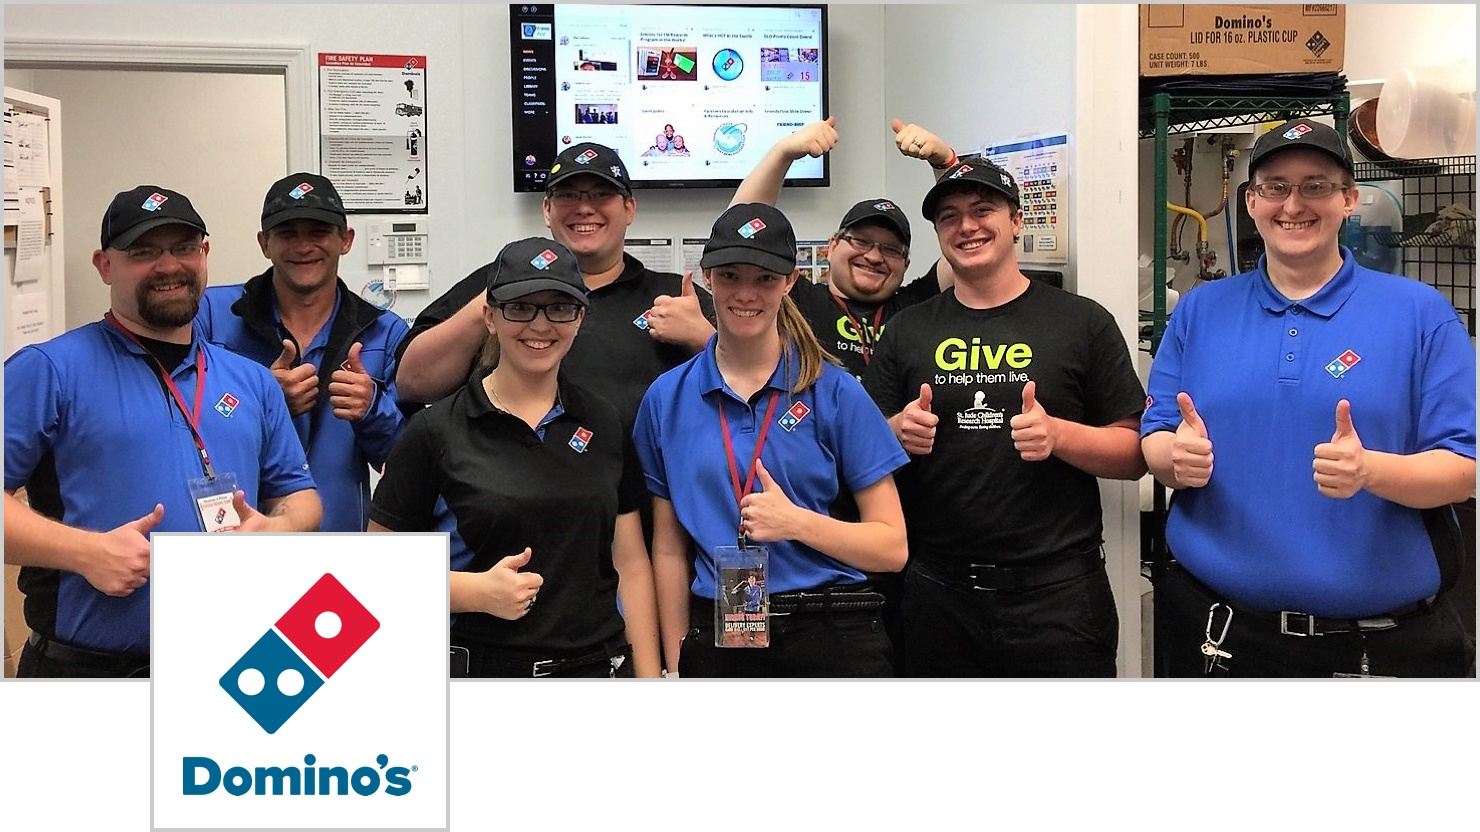 Domino's Pizza franchise reduces business costs with effective intranet